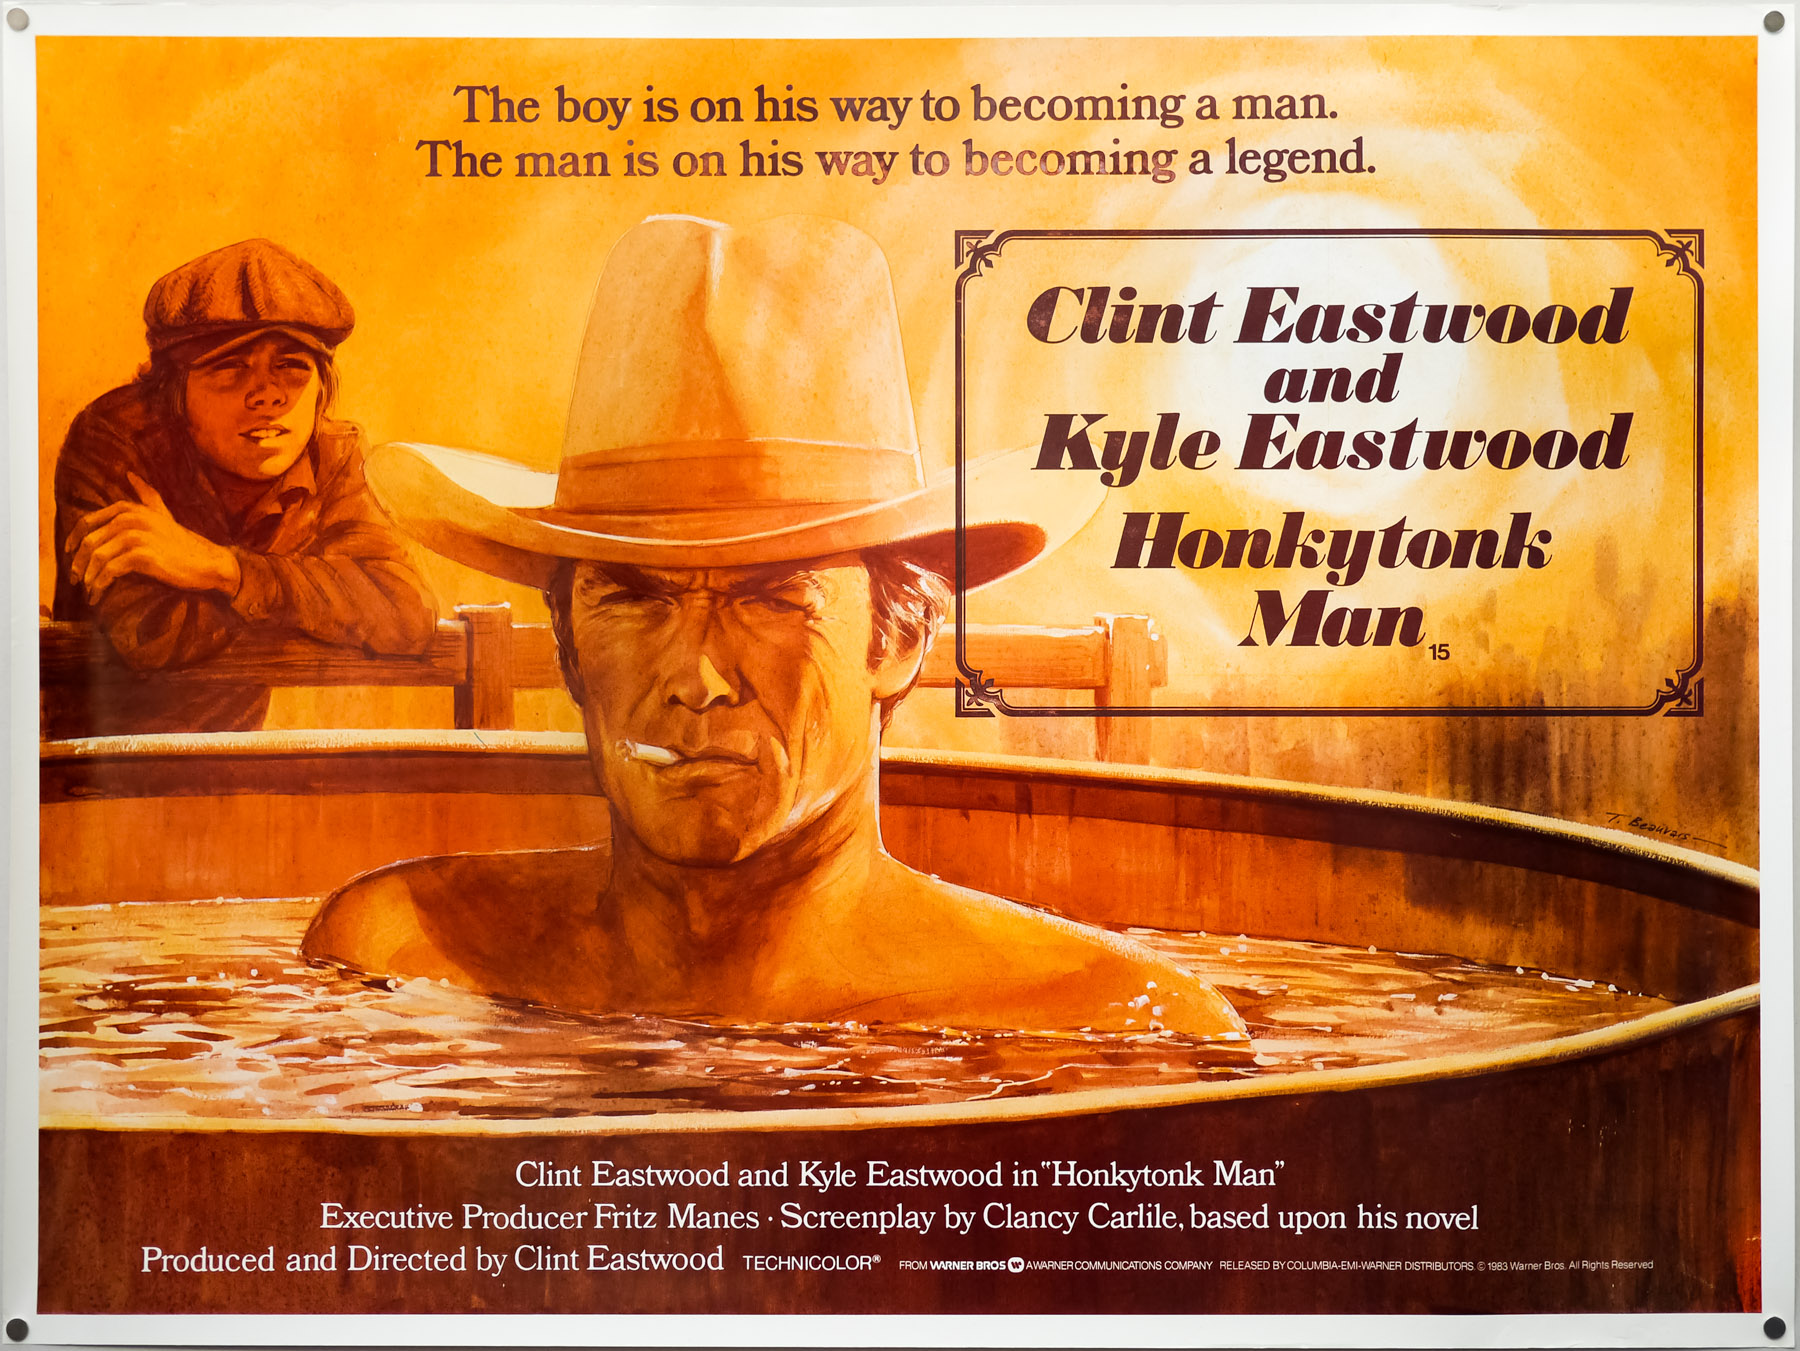 The UK quad for Clint Eastwood's Honkytonk Man, designed and illustrated by Tom Beauvais in 1982. Tom's son Keith was used as a reference double to capture the pose of Eastwood's own son Kyle.